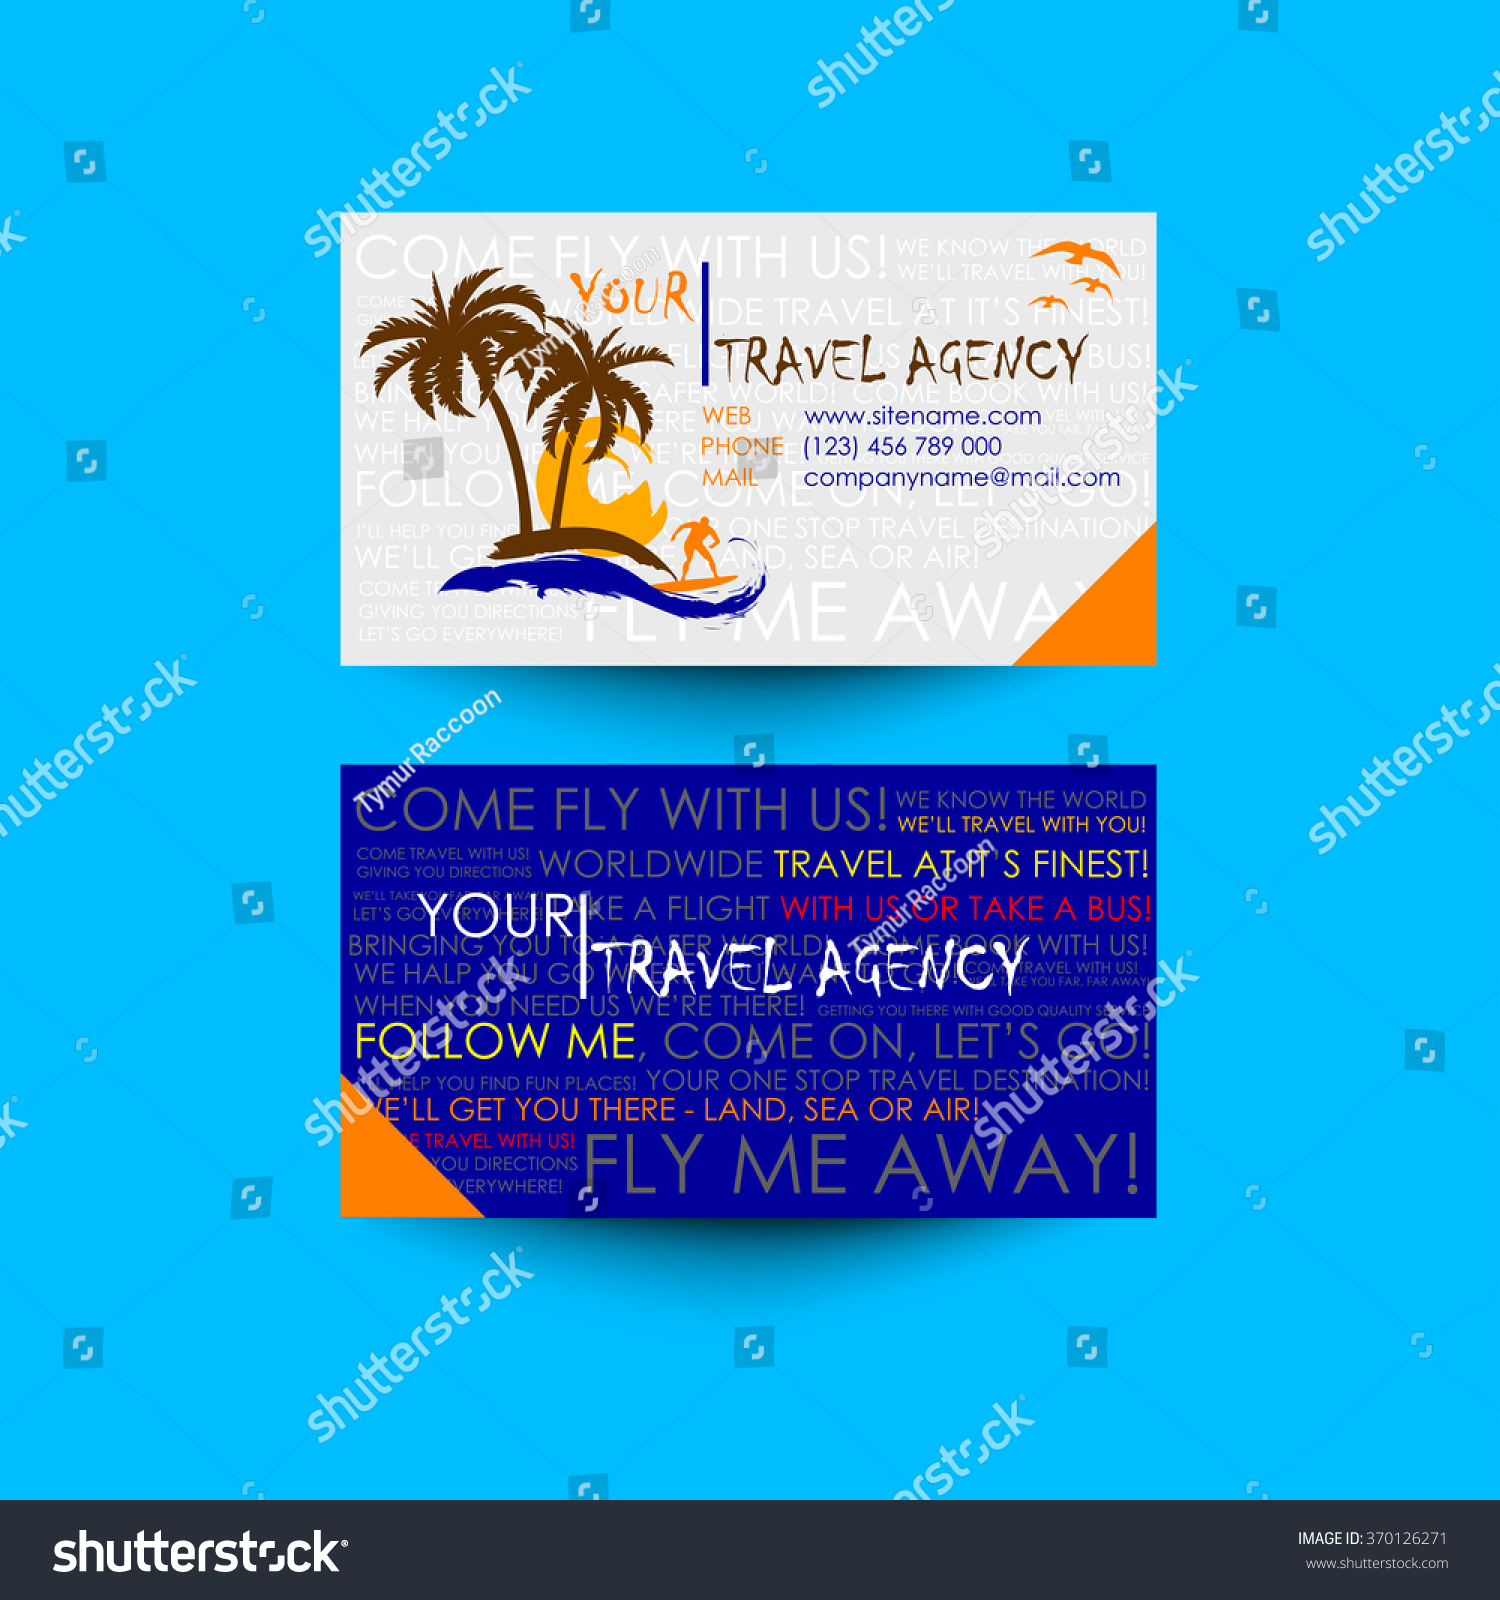 Travel agency business card template logo stock vector 370126271 travel agency business card template logo design idea magicingreecefo Choice Image